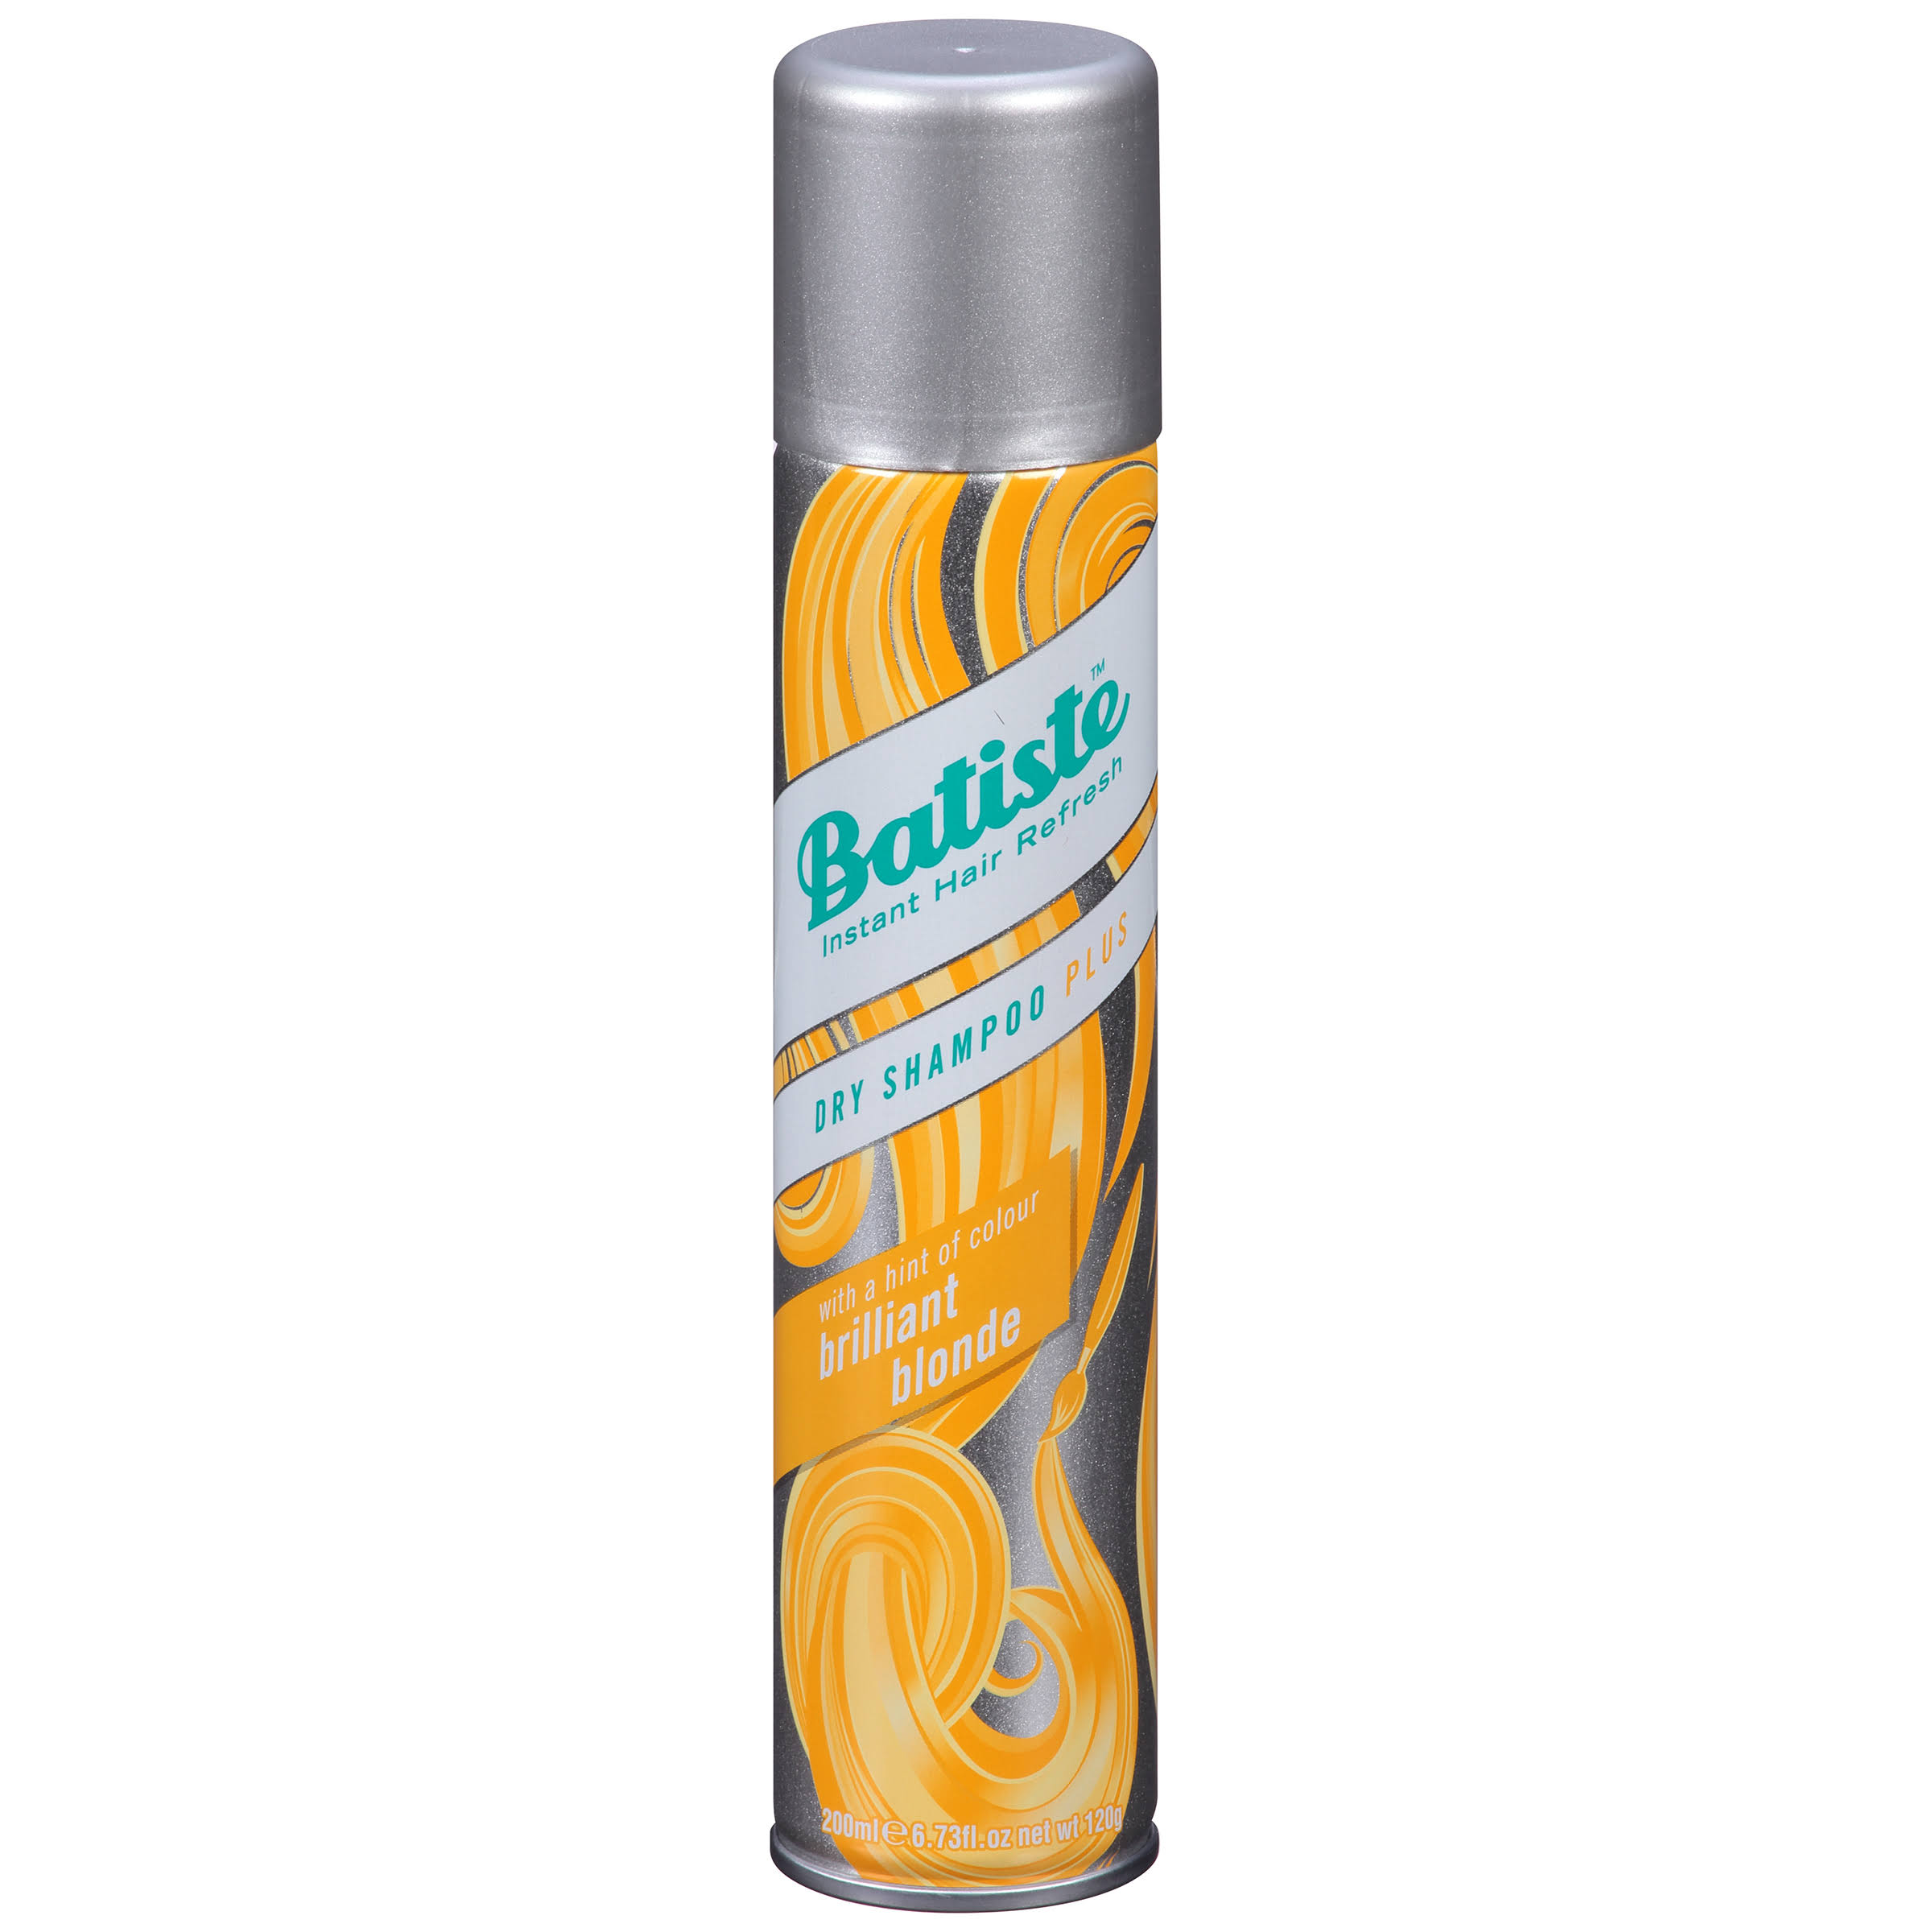 Batiste Dry Shampoo Spray - Light and Blonde, 200ml